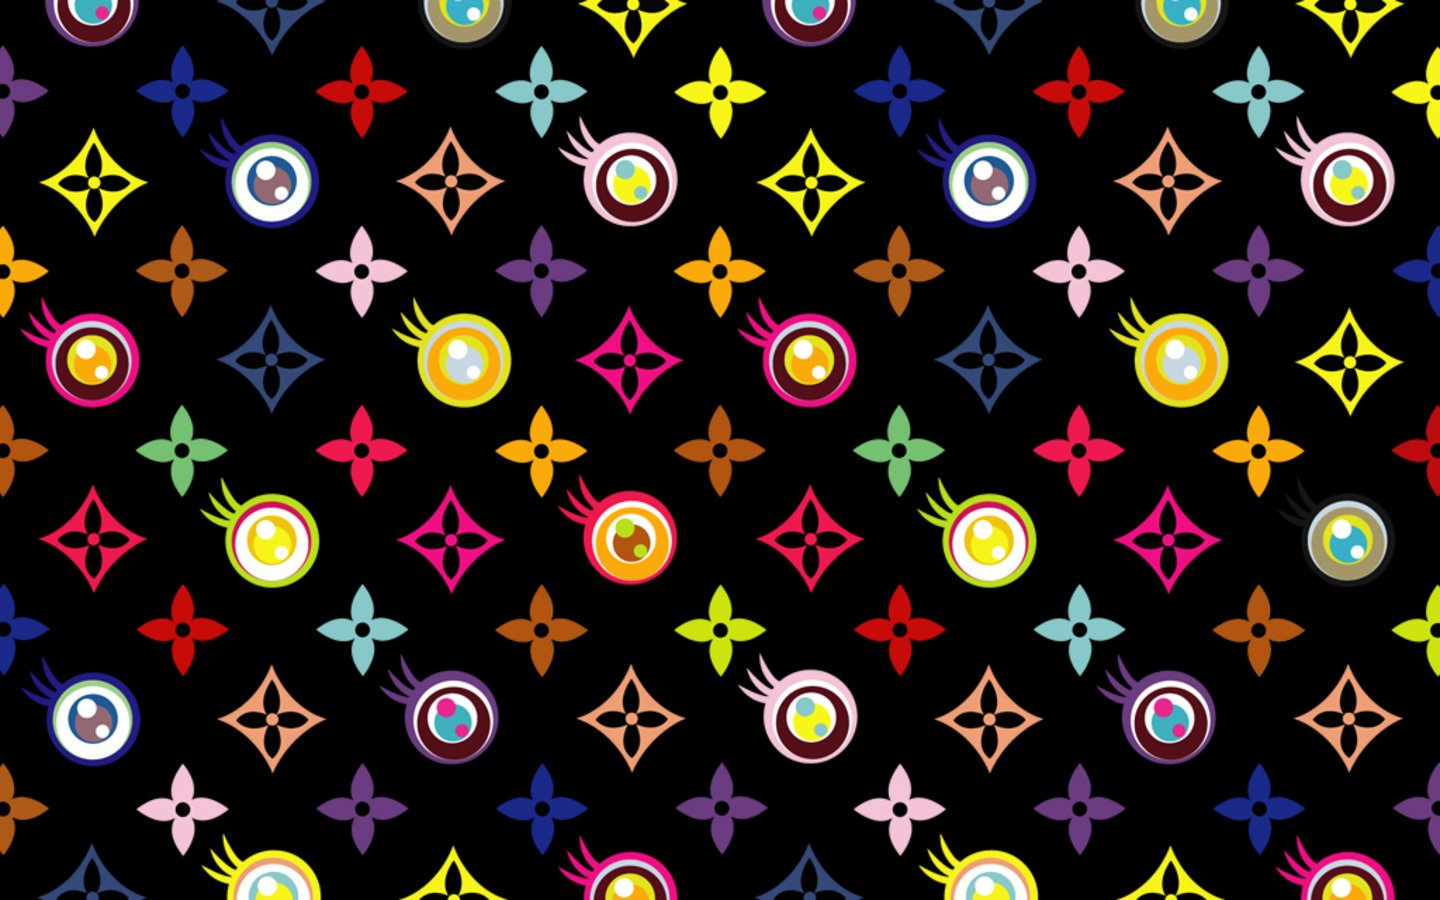 Louis Vuitton Wallpaper Computer Desktop Wallpapers 1440x900 1440x900